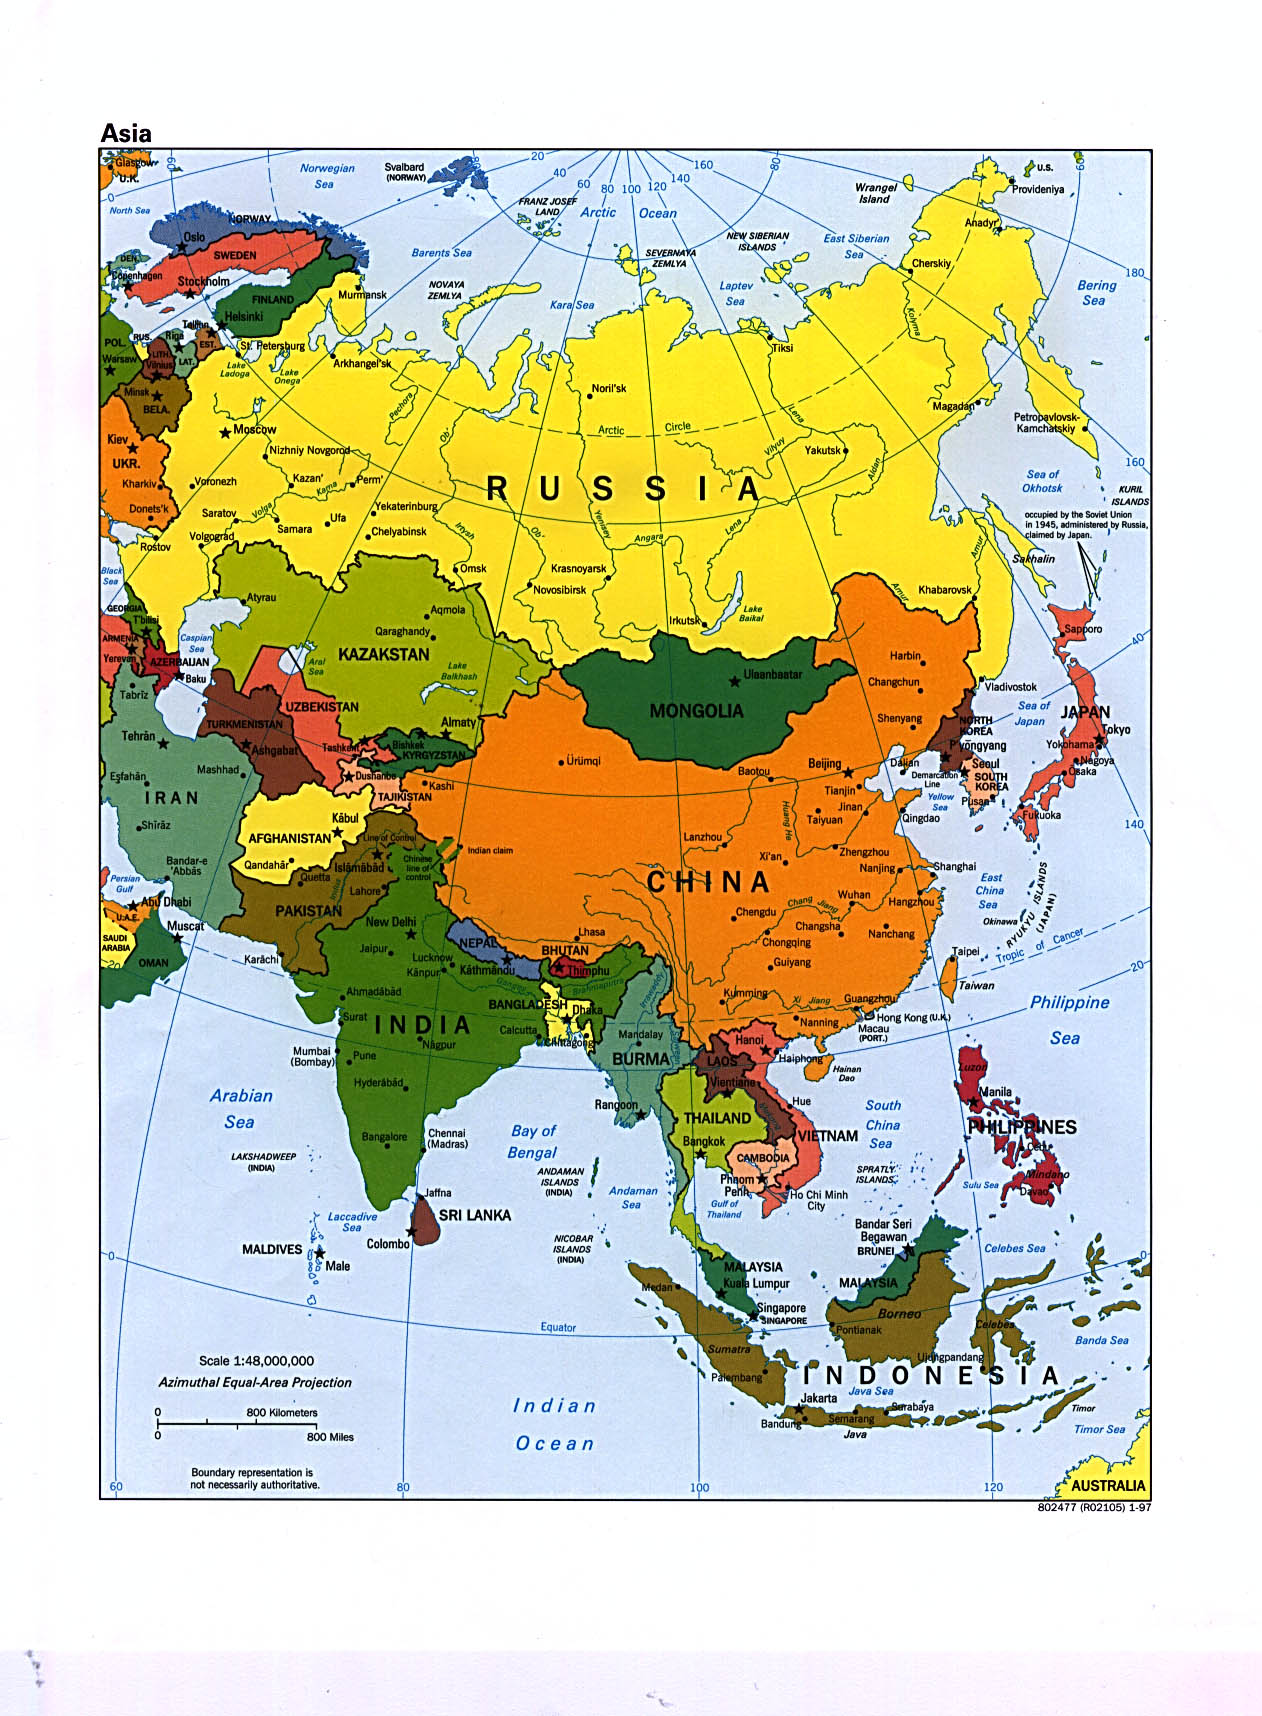 The Continent Of Asia Map.Www Mappi Net Maps Of Continents Asia